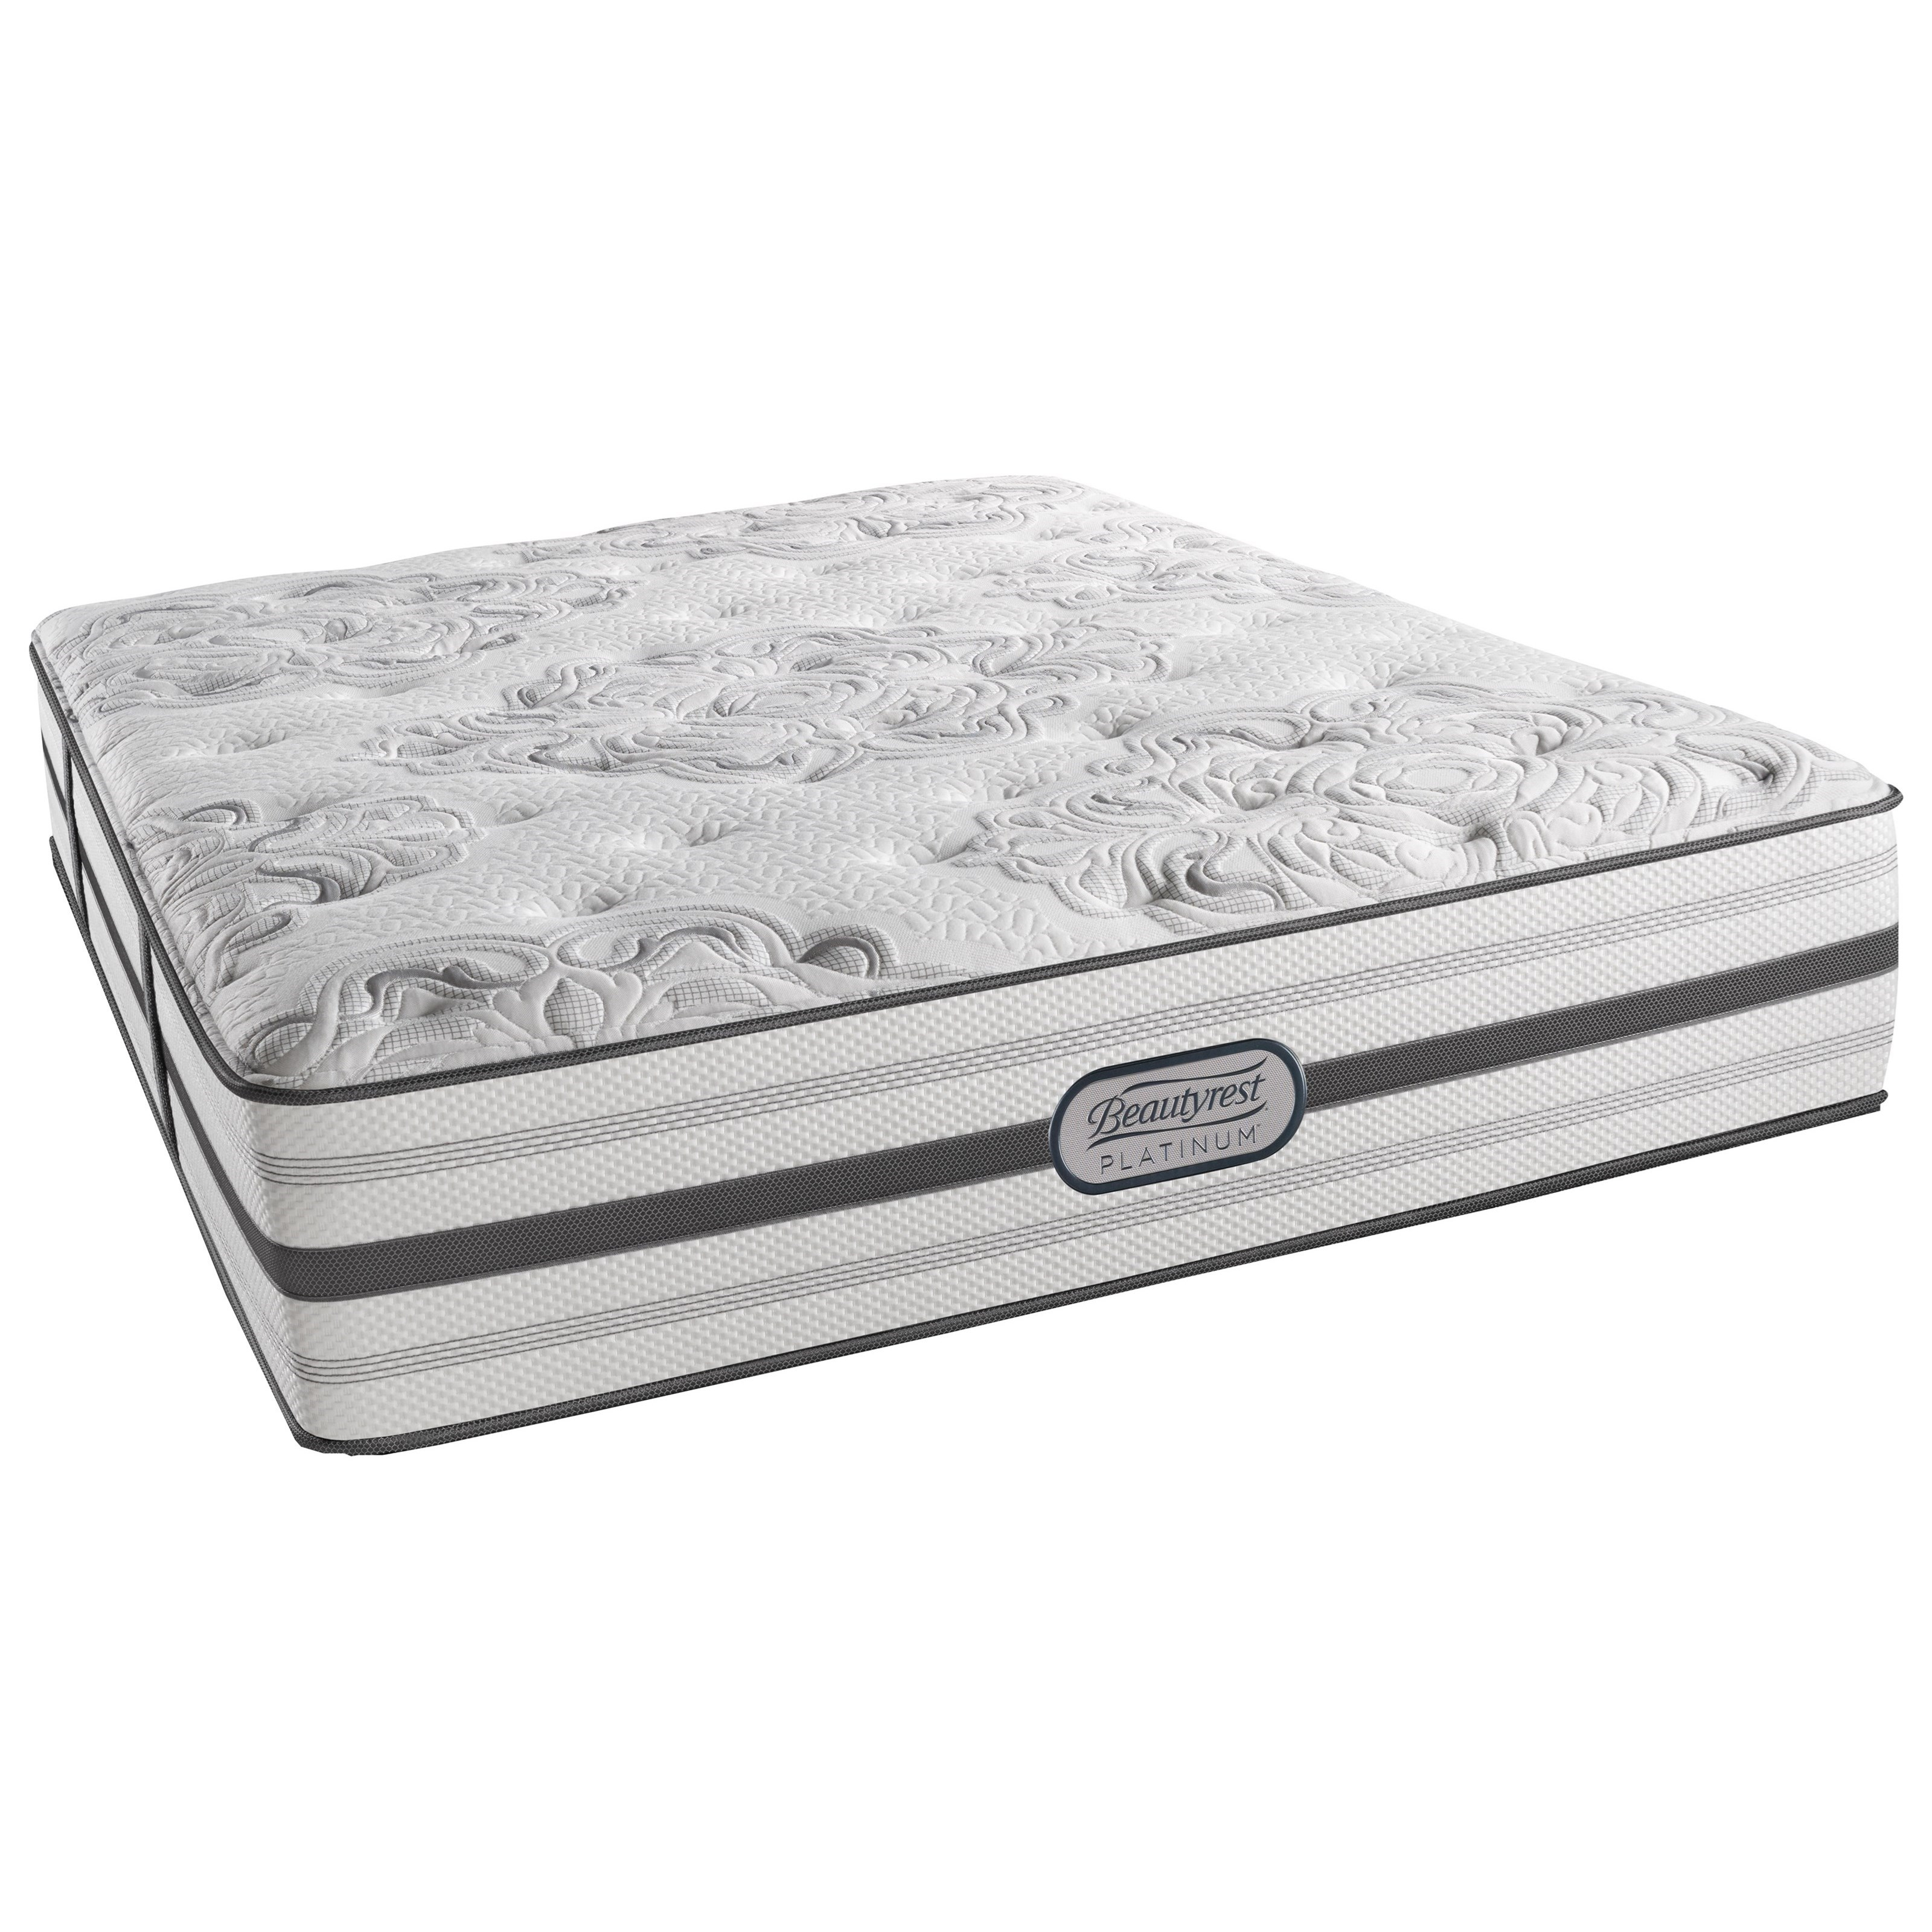 """Simmons Hindsdale Plush Queen Luxury Firm 14.5"""" Mattress - Item Number: LV2LFM-Q"""